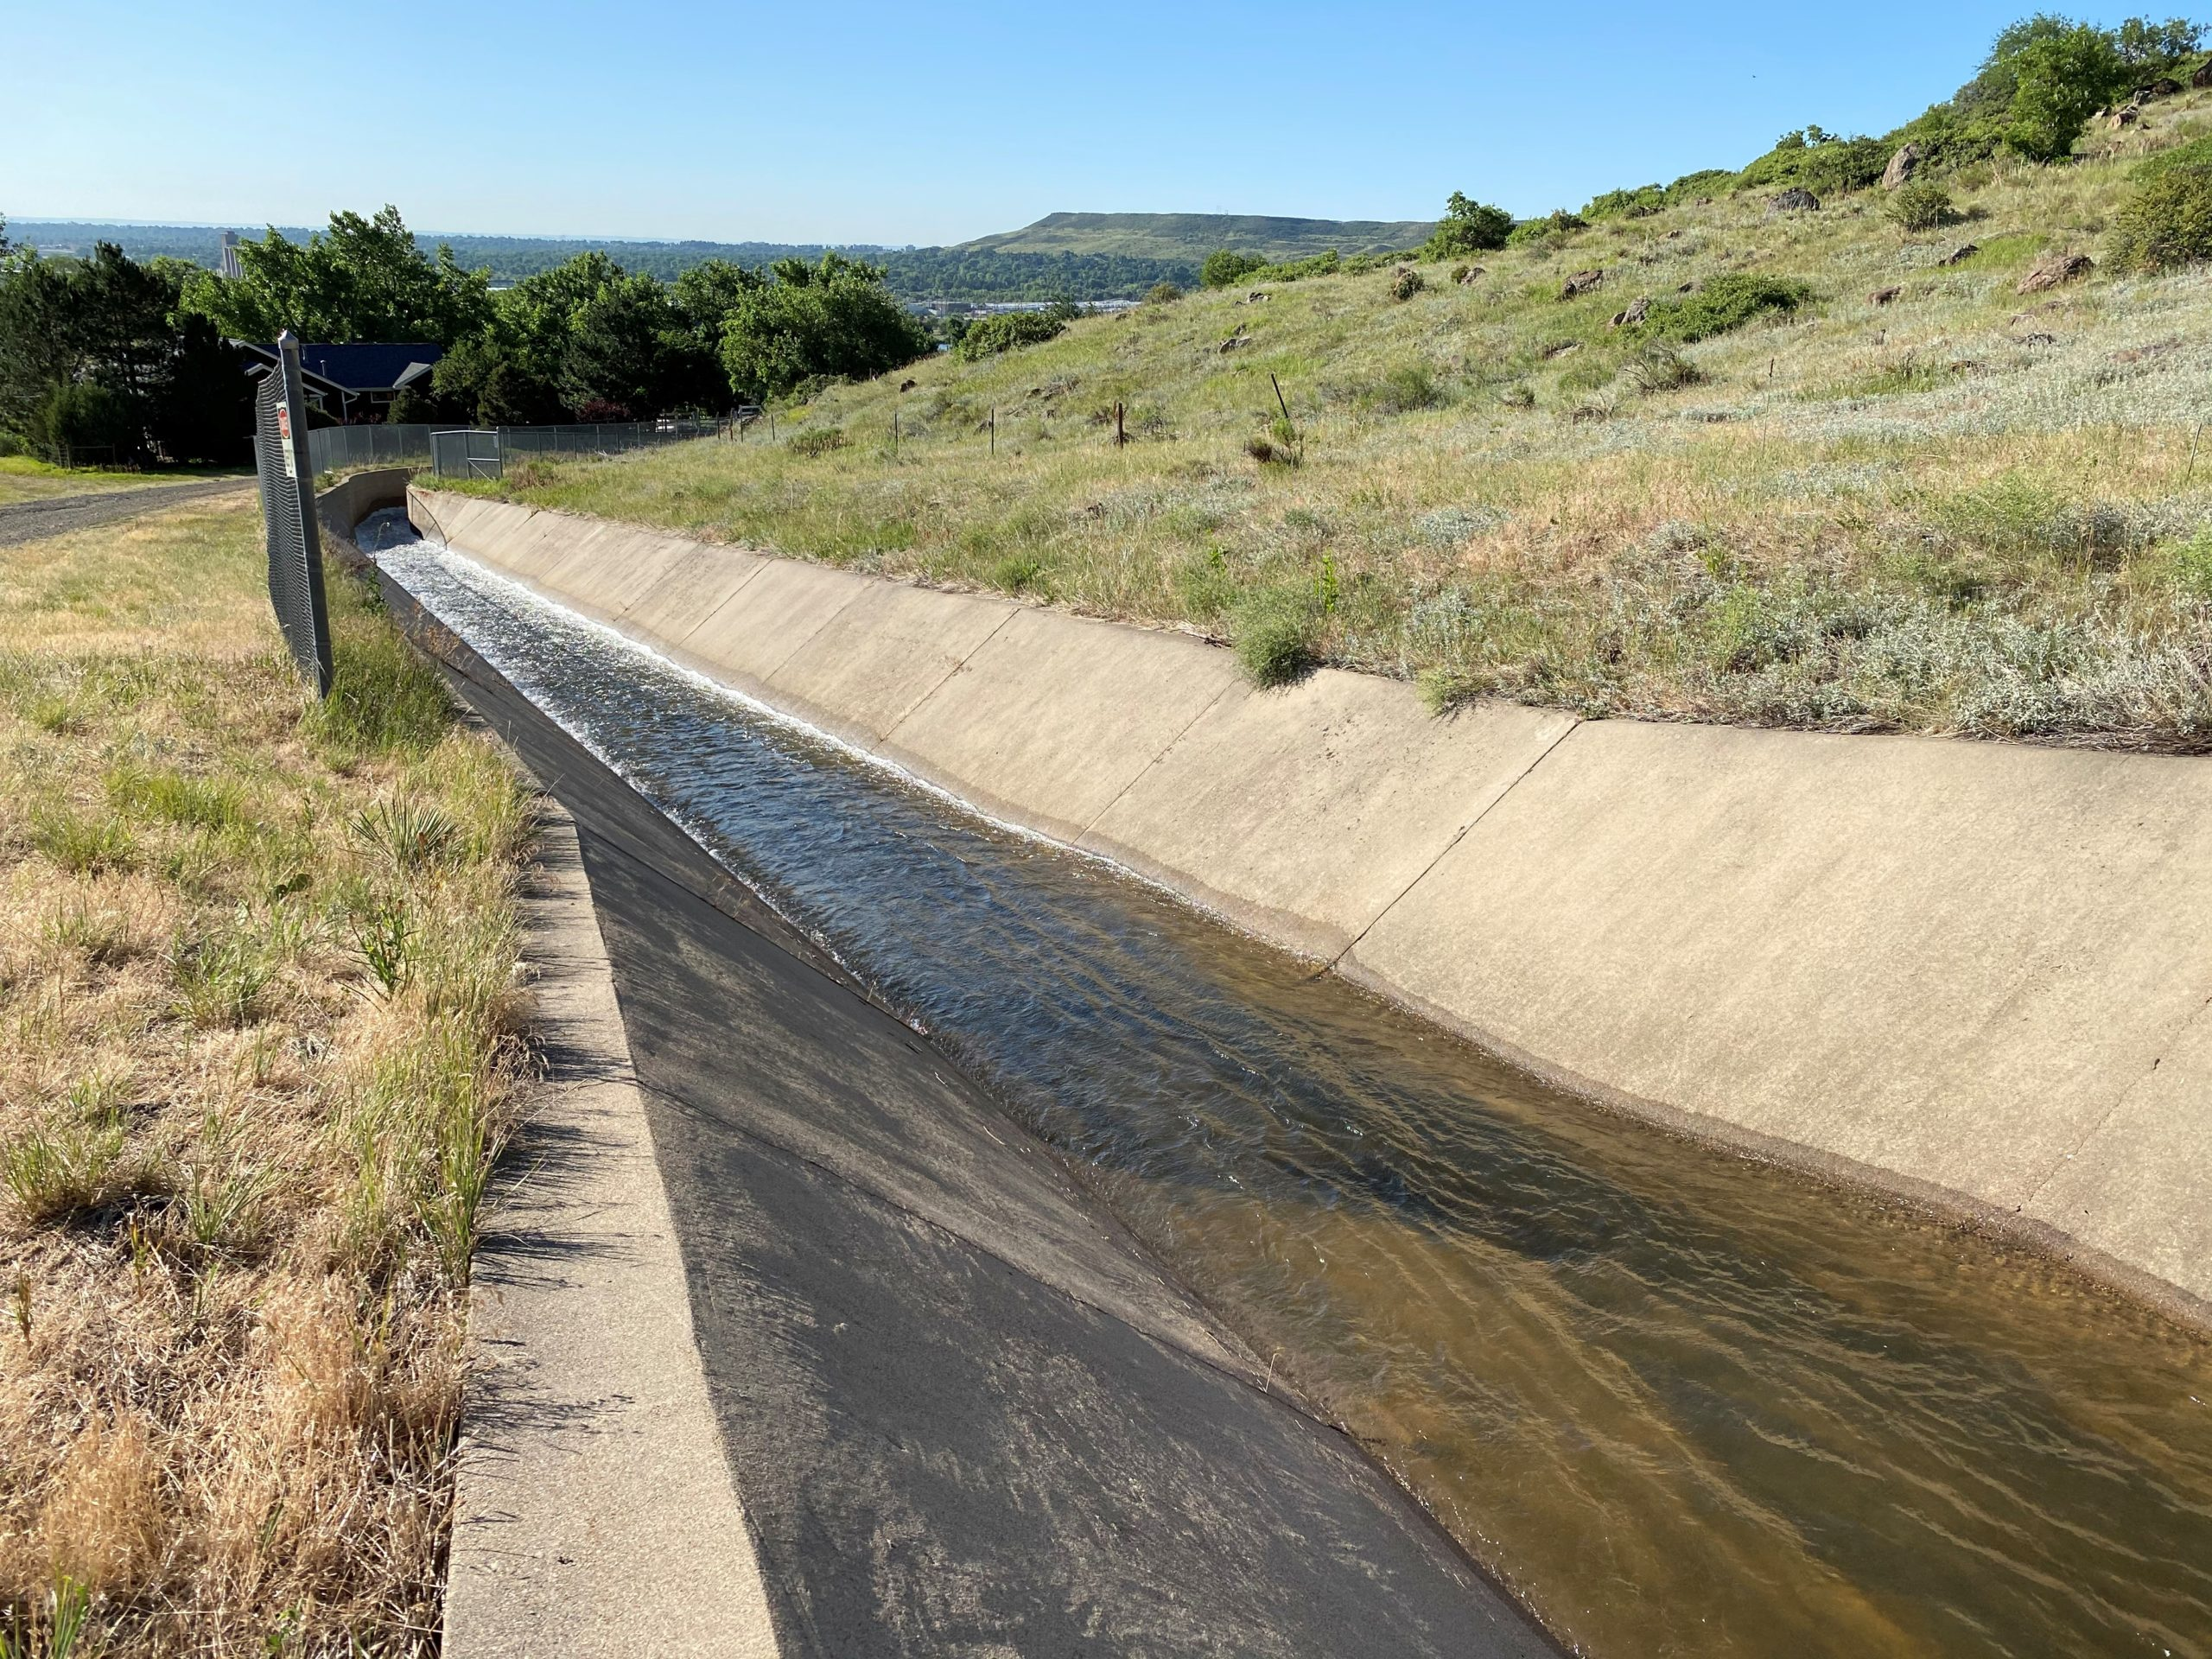 Water flows down a concrete canal.